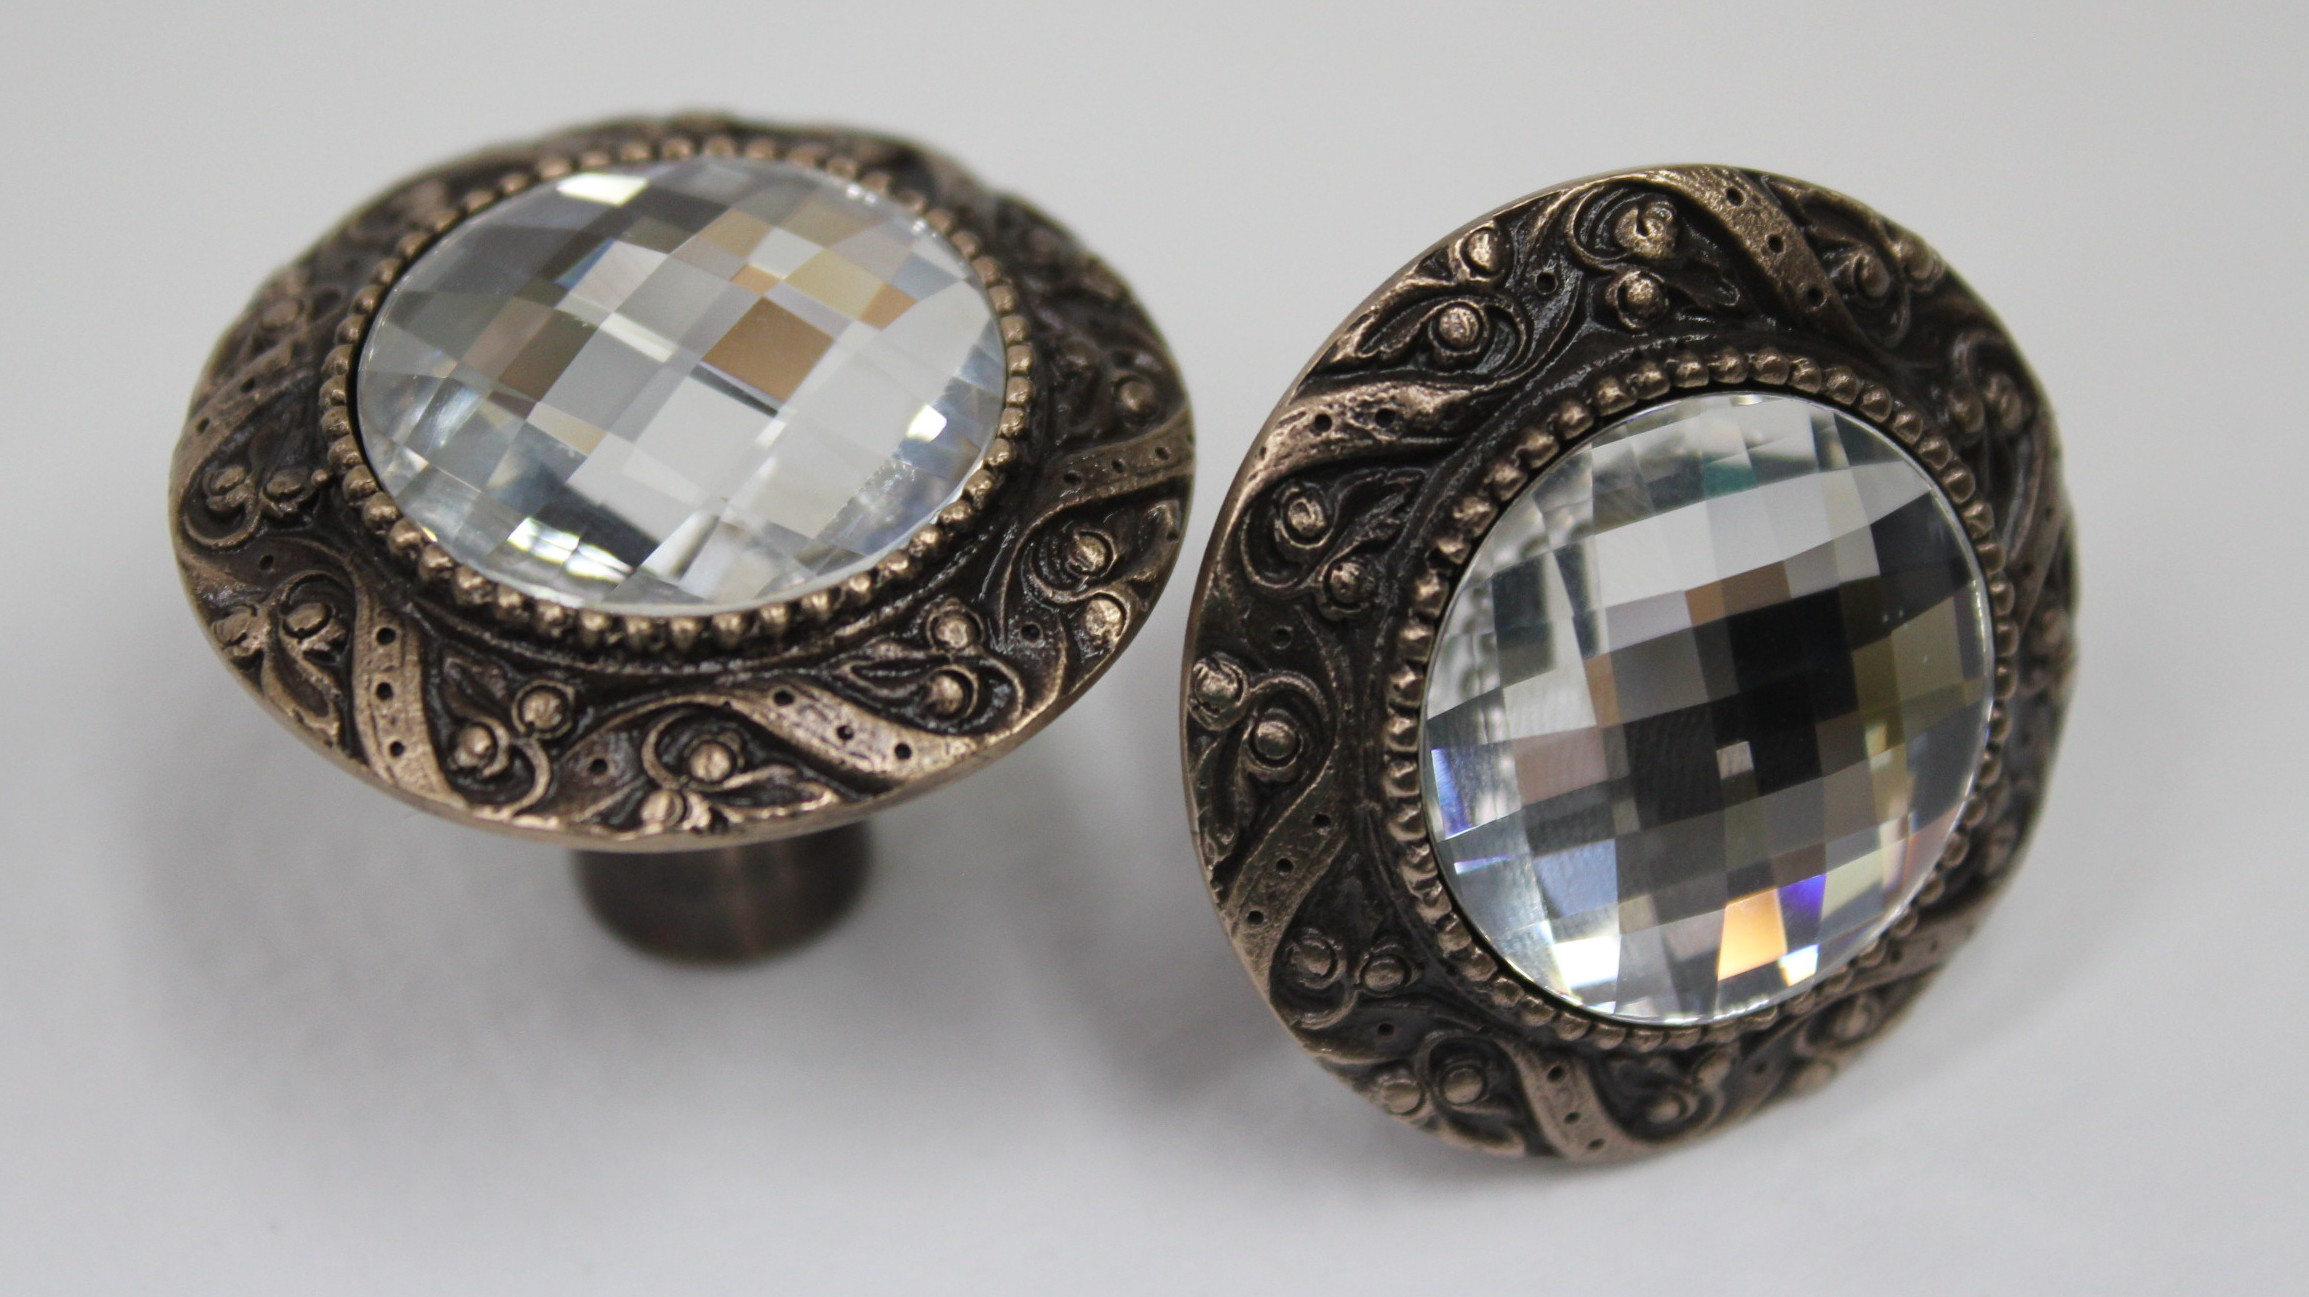 Swarovski Crystal Knobs